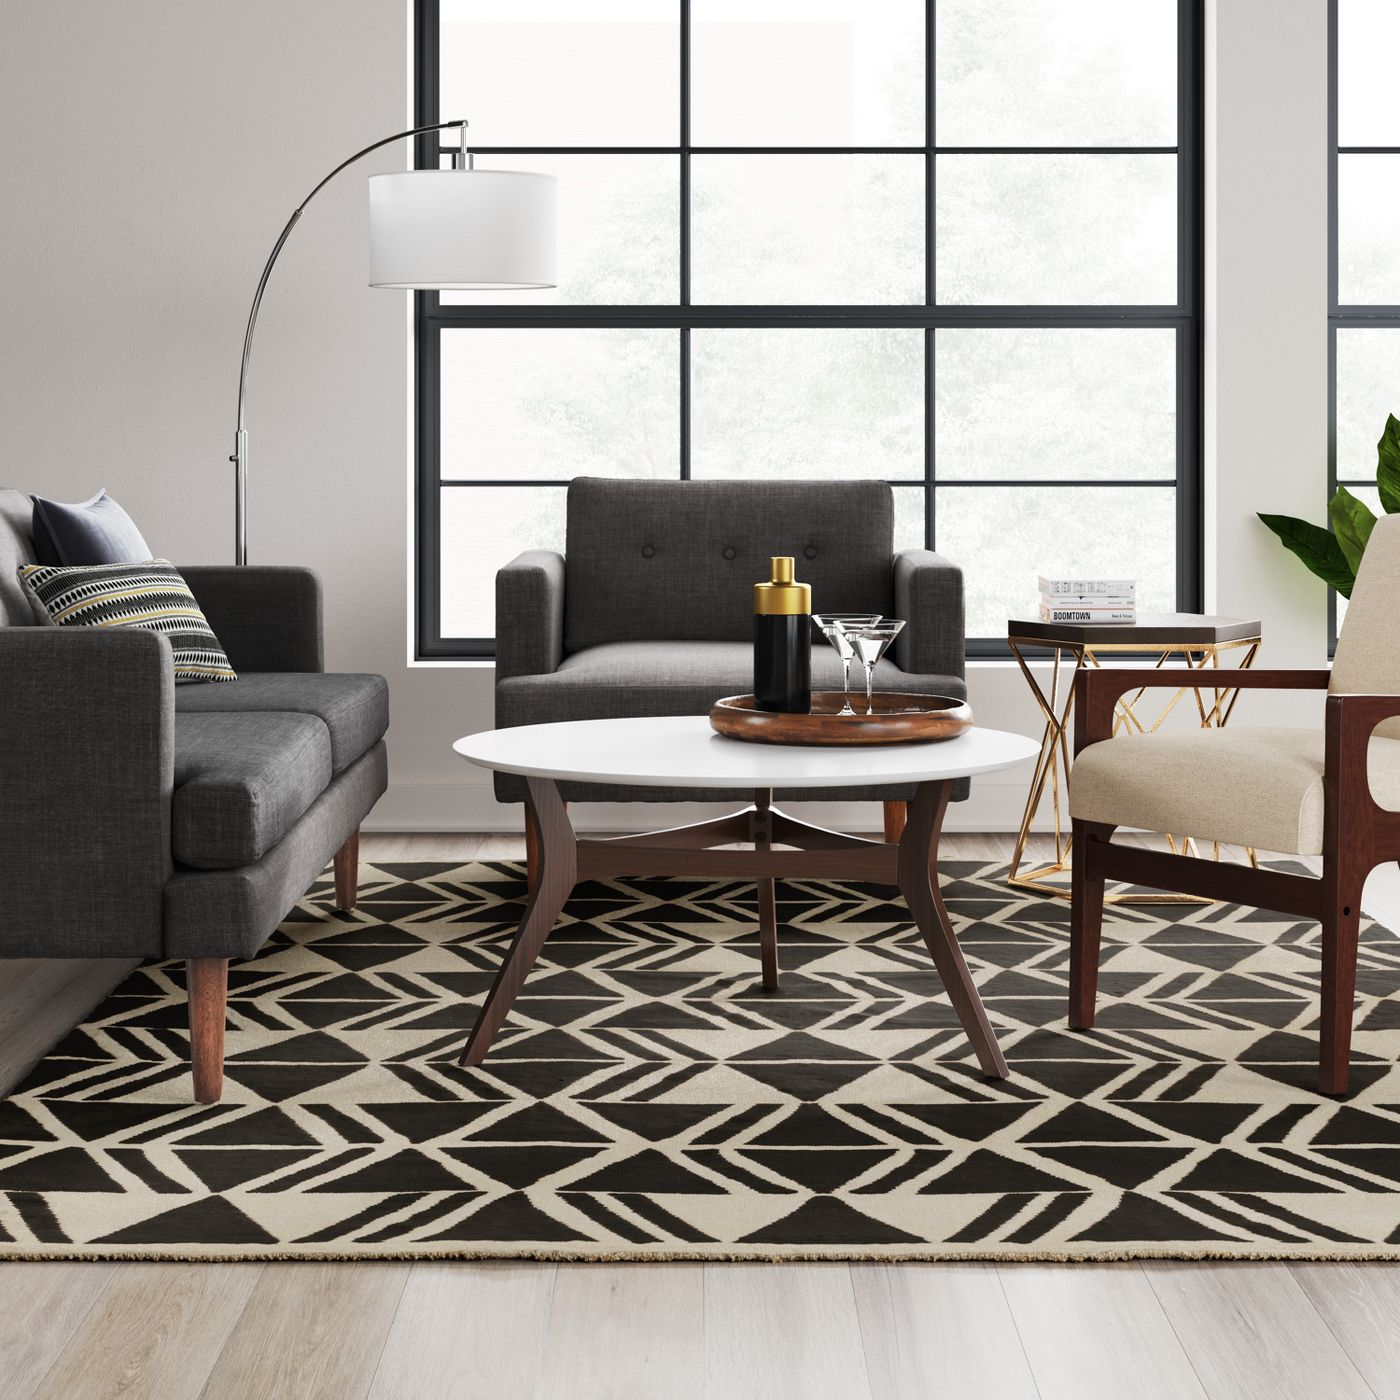 Act Fast! Target's Massive 30%-Off Rug Sale Ends Tonight